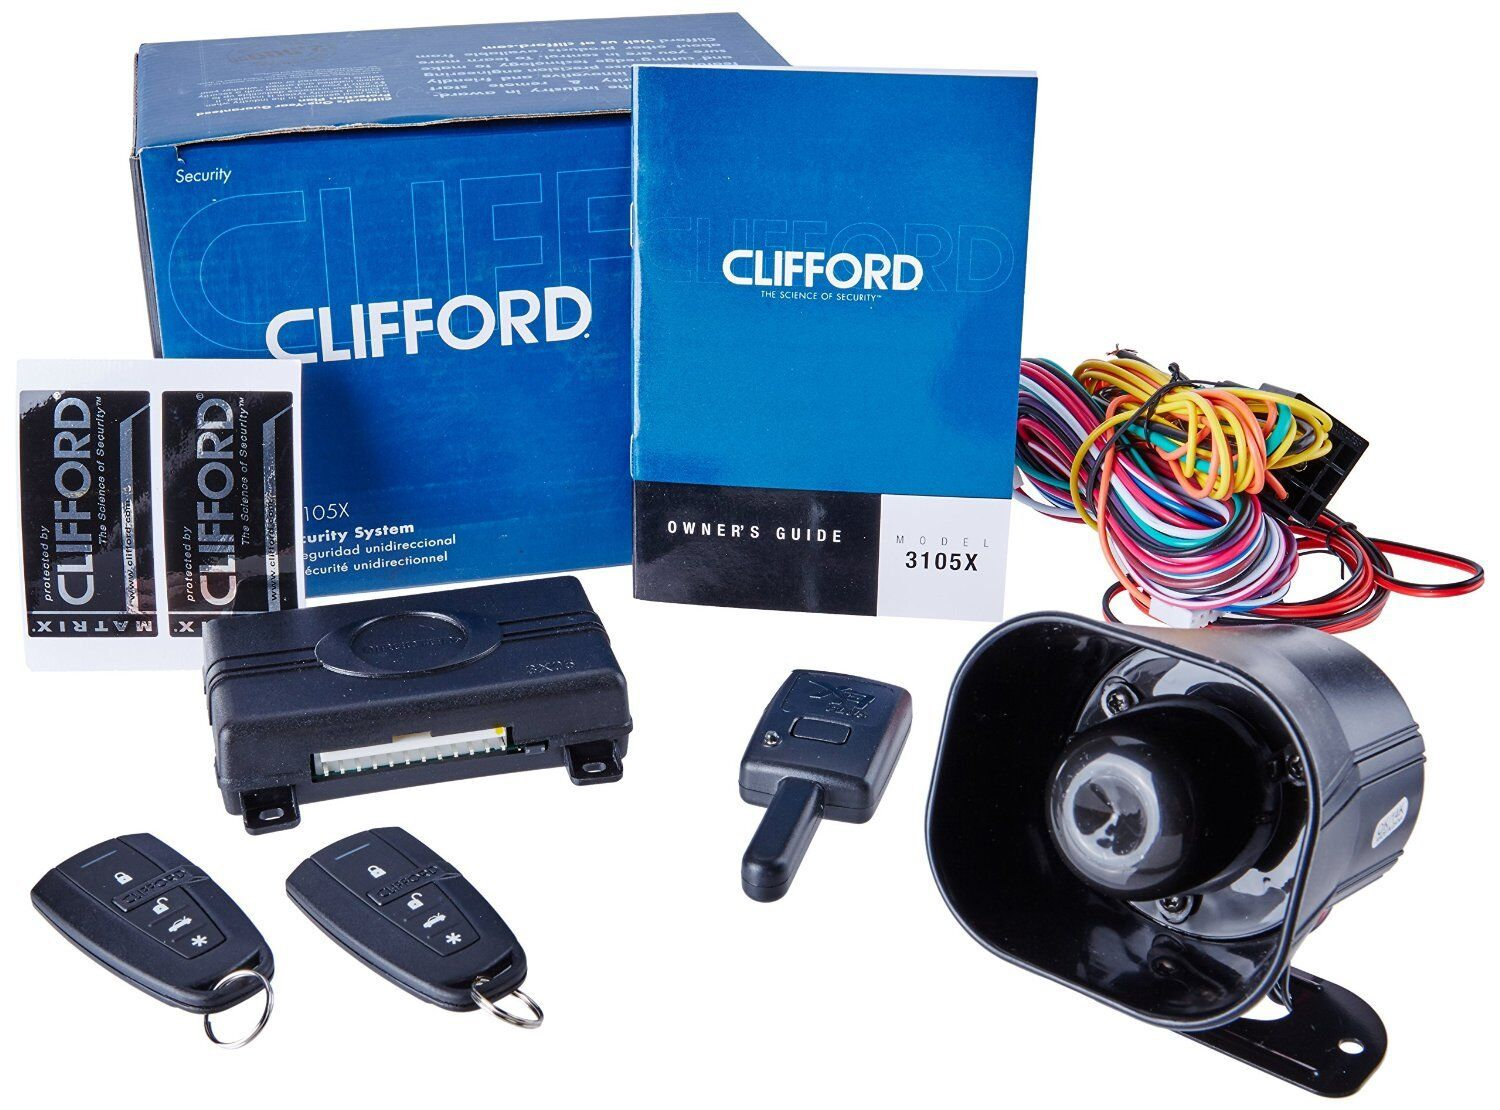 clifford car alarm wiring diagram clifford image clifford alarm on clifford car alarm wiring diagram